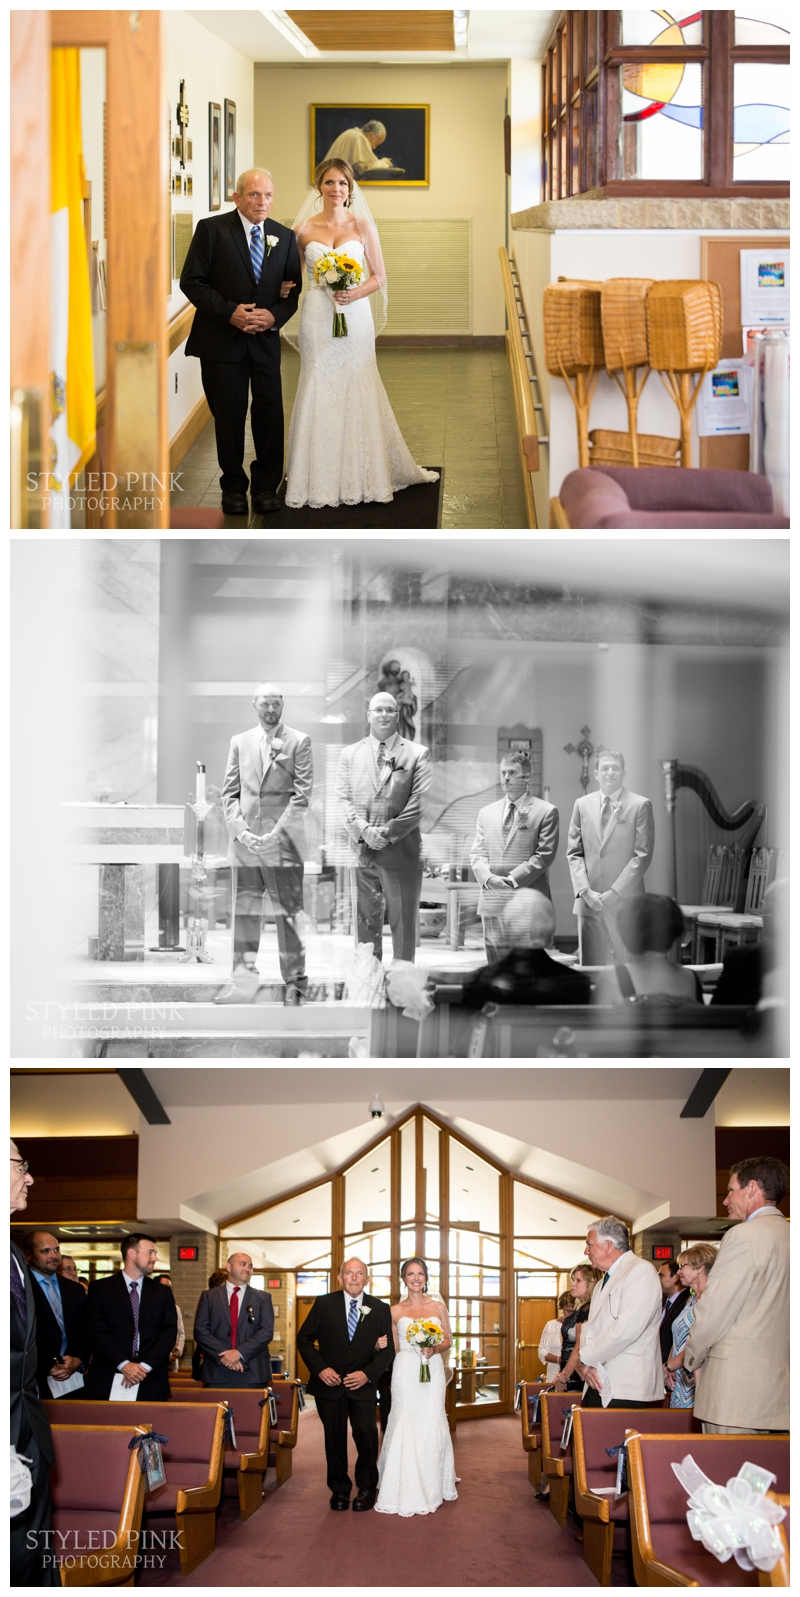 Paul and Katie's ceremony took place at their church, St. Andrew the Apostle Catholic Church.